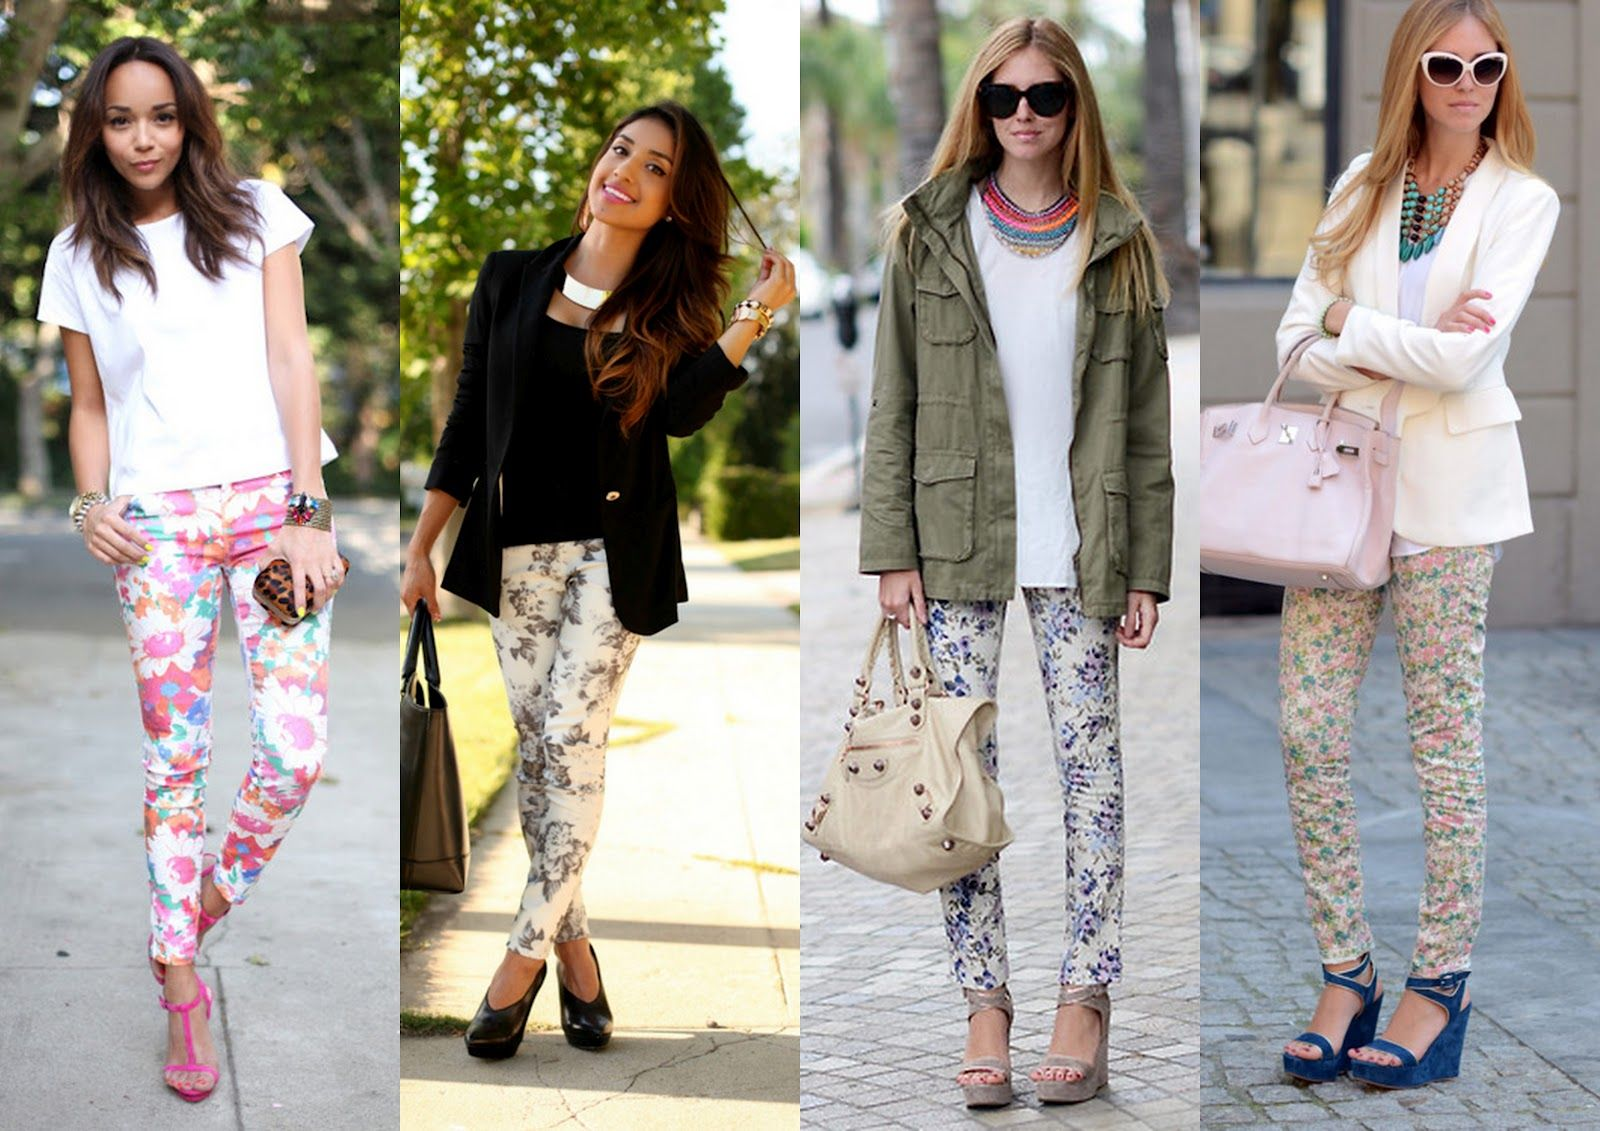 How to floral wear printed jeans pictures